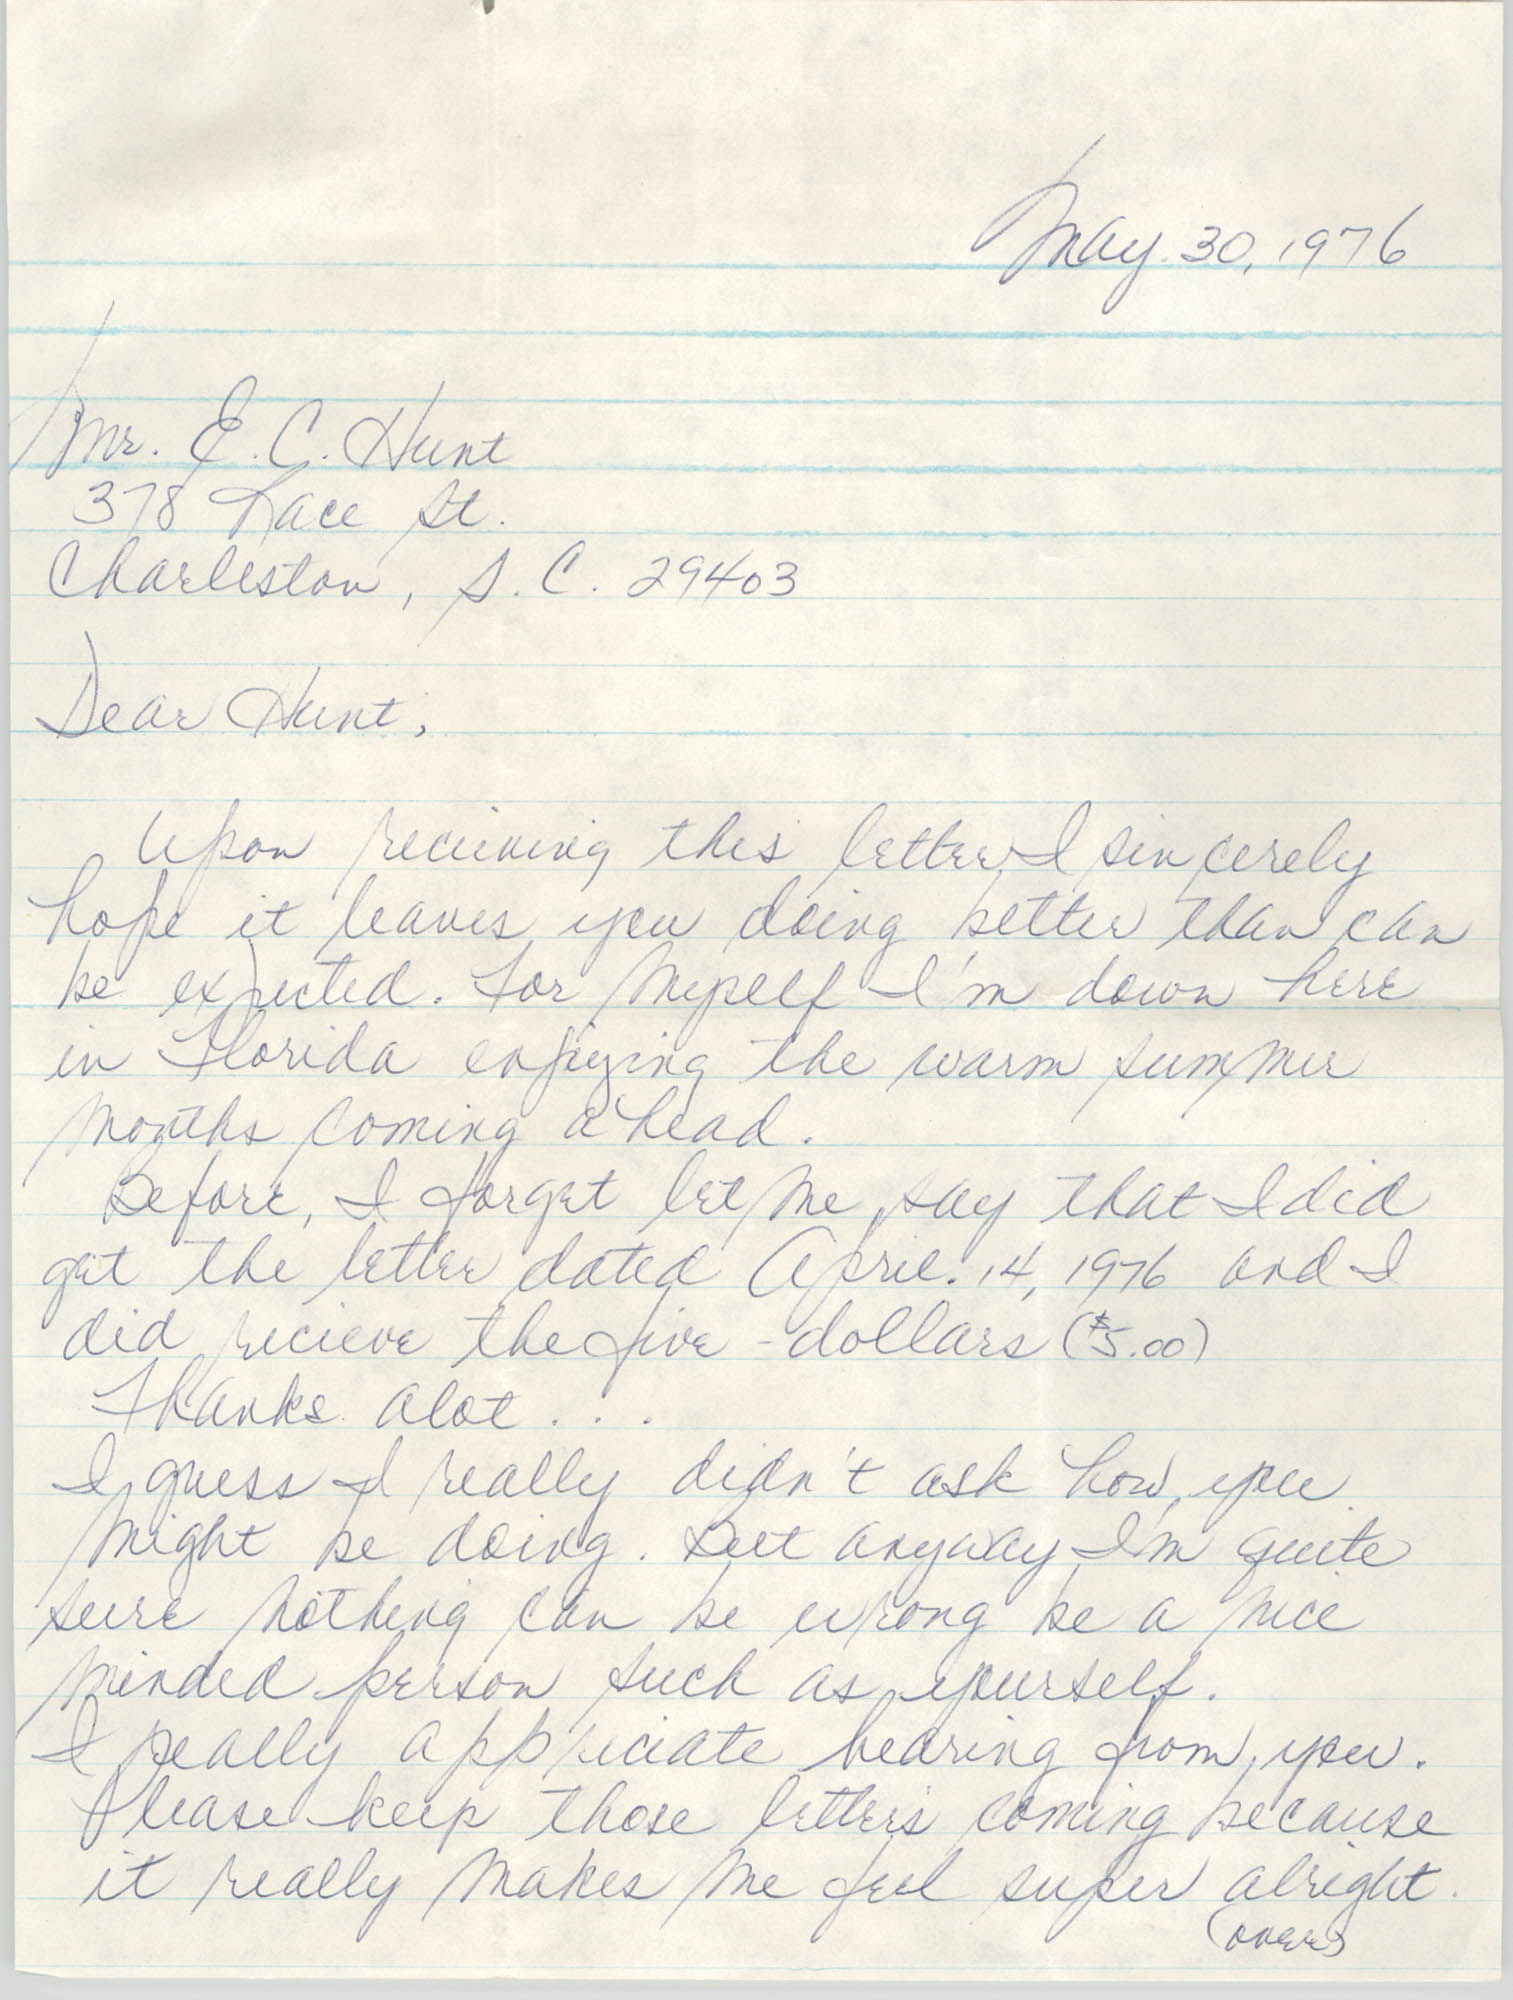 Letter to Eugene C. Hunt, May 30, 1976